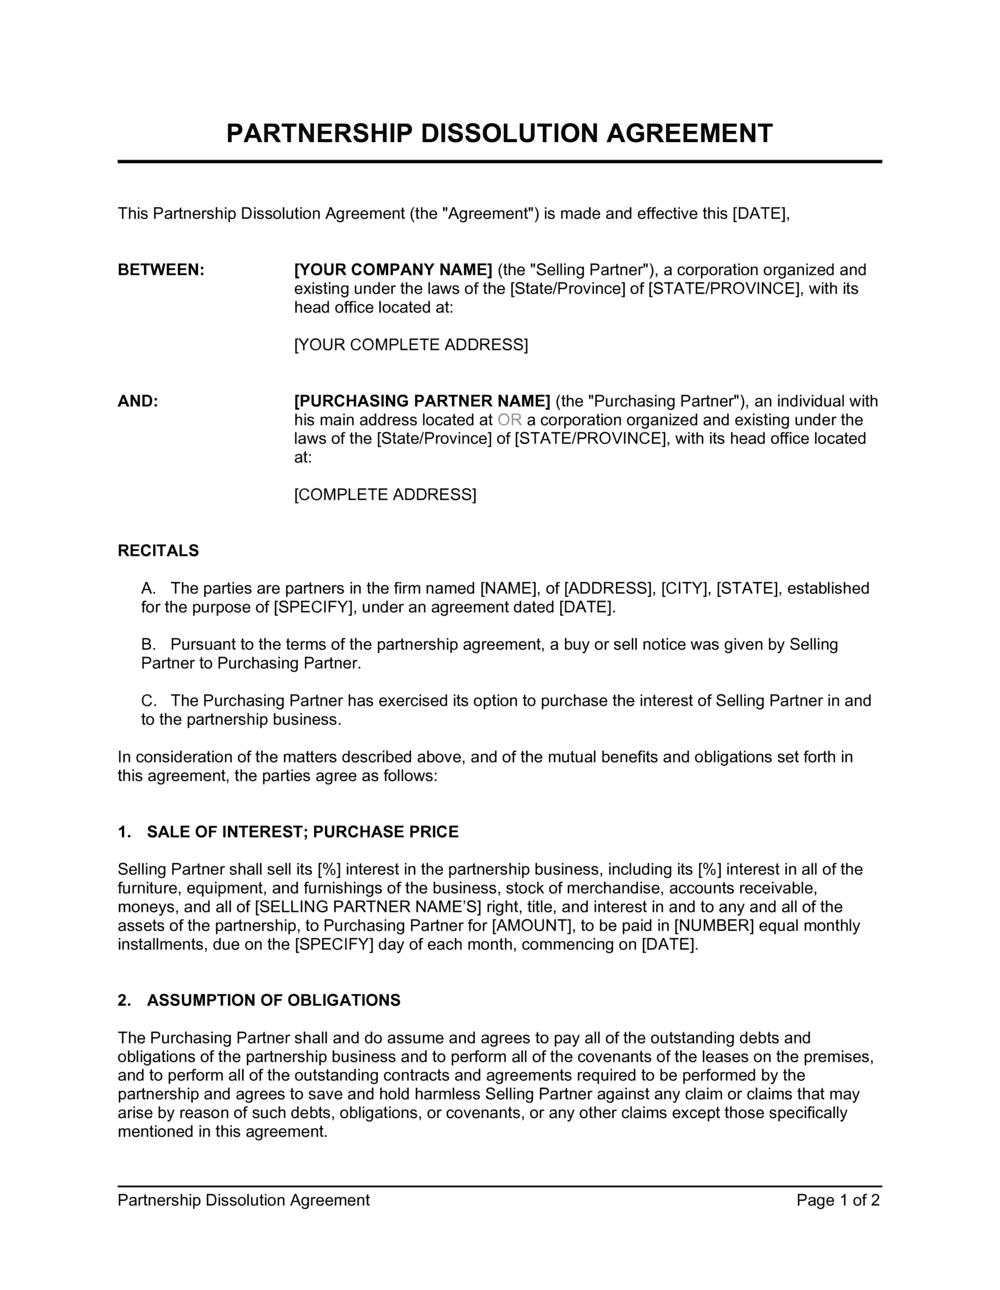 Business-in-a-Box's Partnership Dissolution Agreement Template